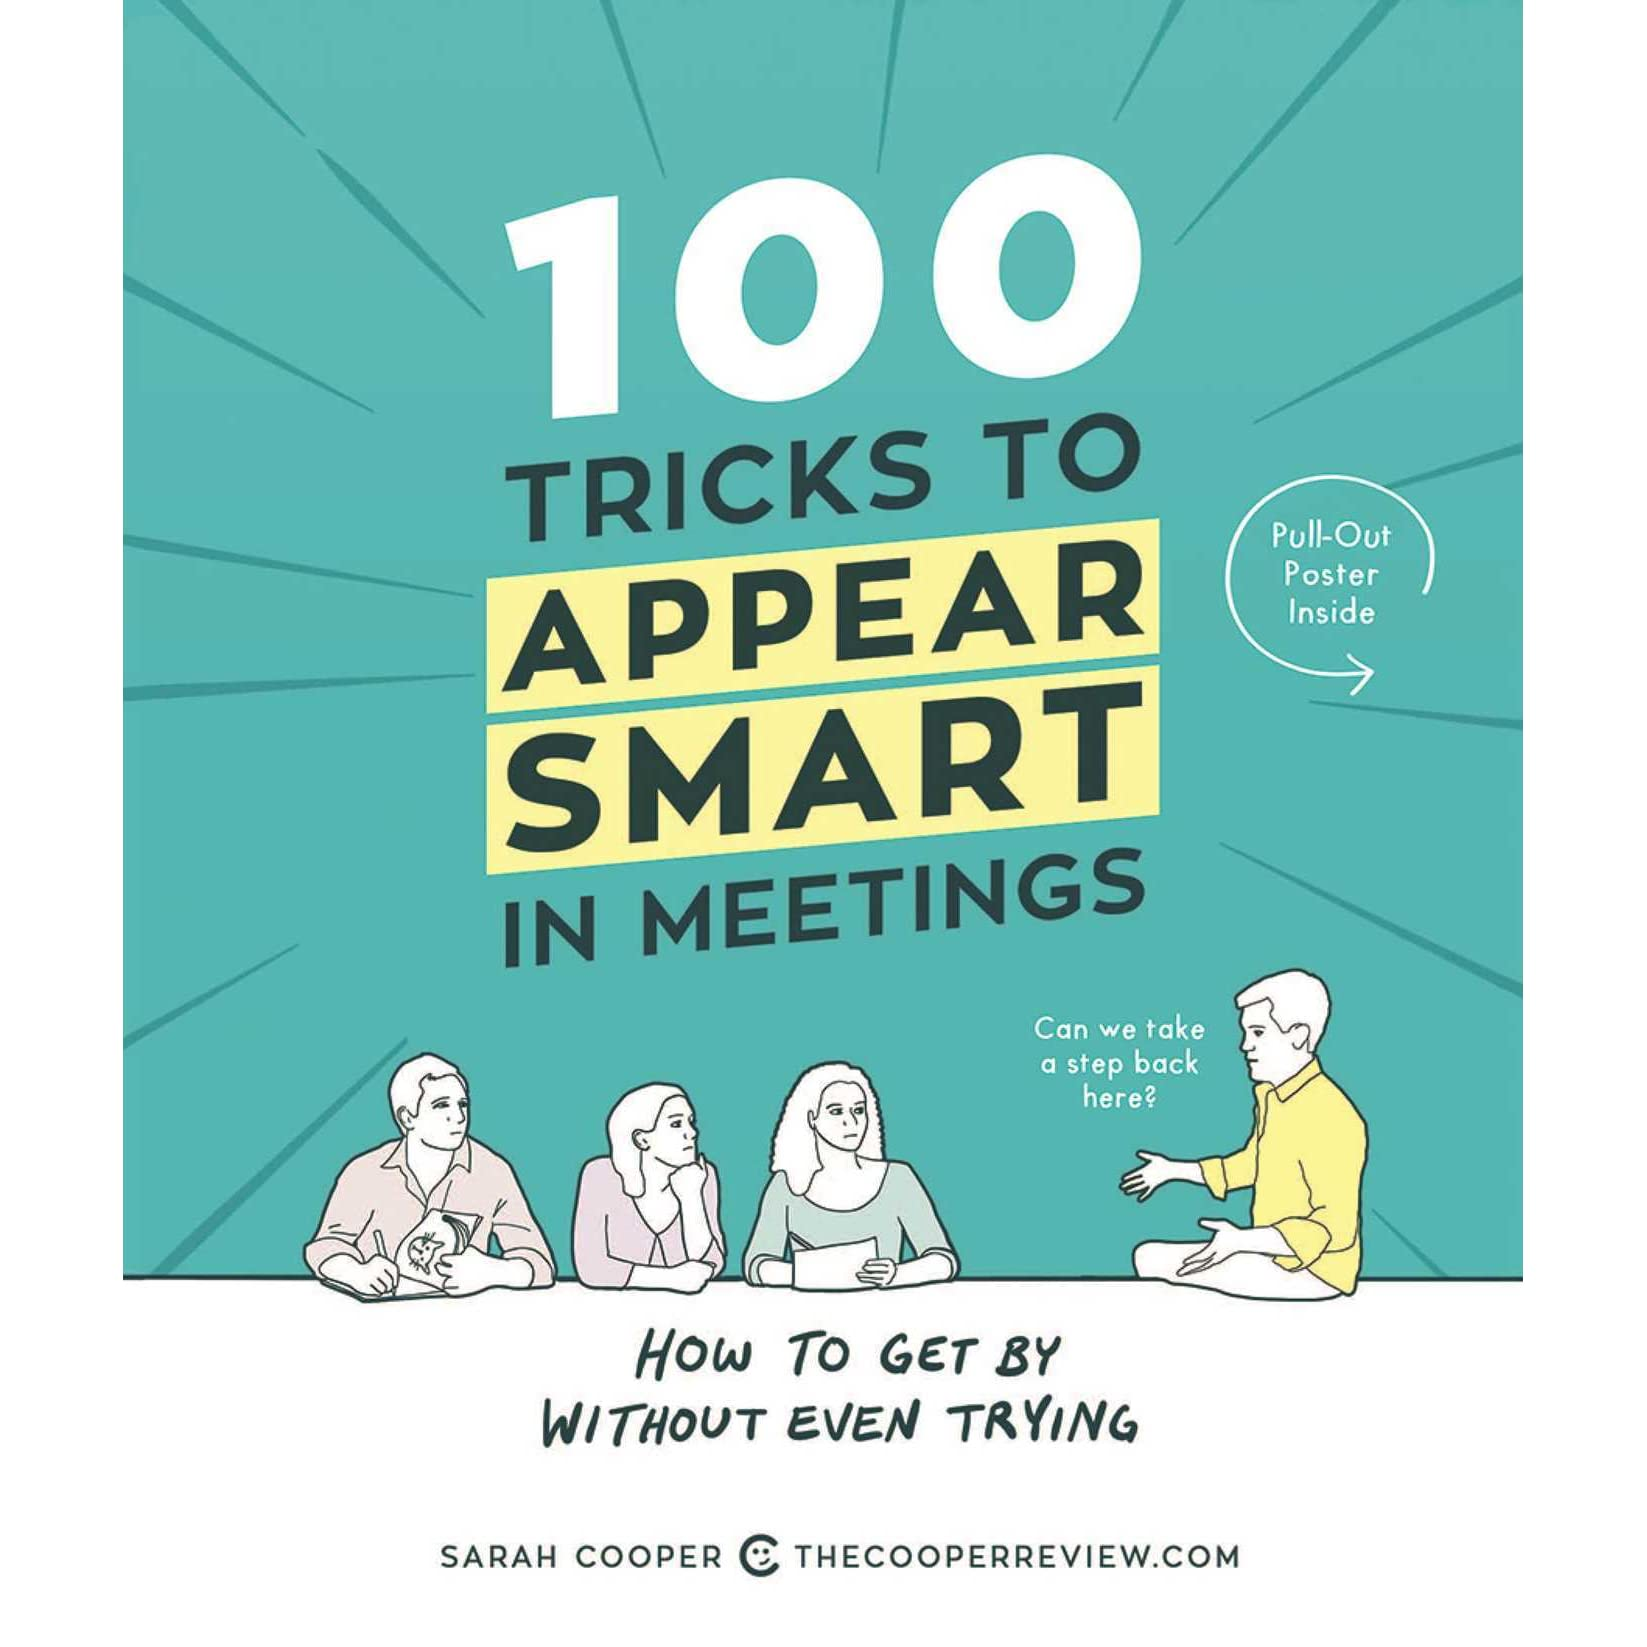 100 Tricks to Appear Smart in Meetings: How to Get By Without Even Trying  by Sarah Cooper